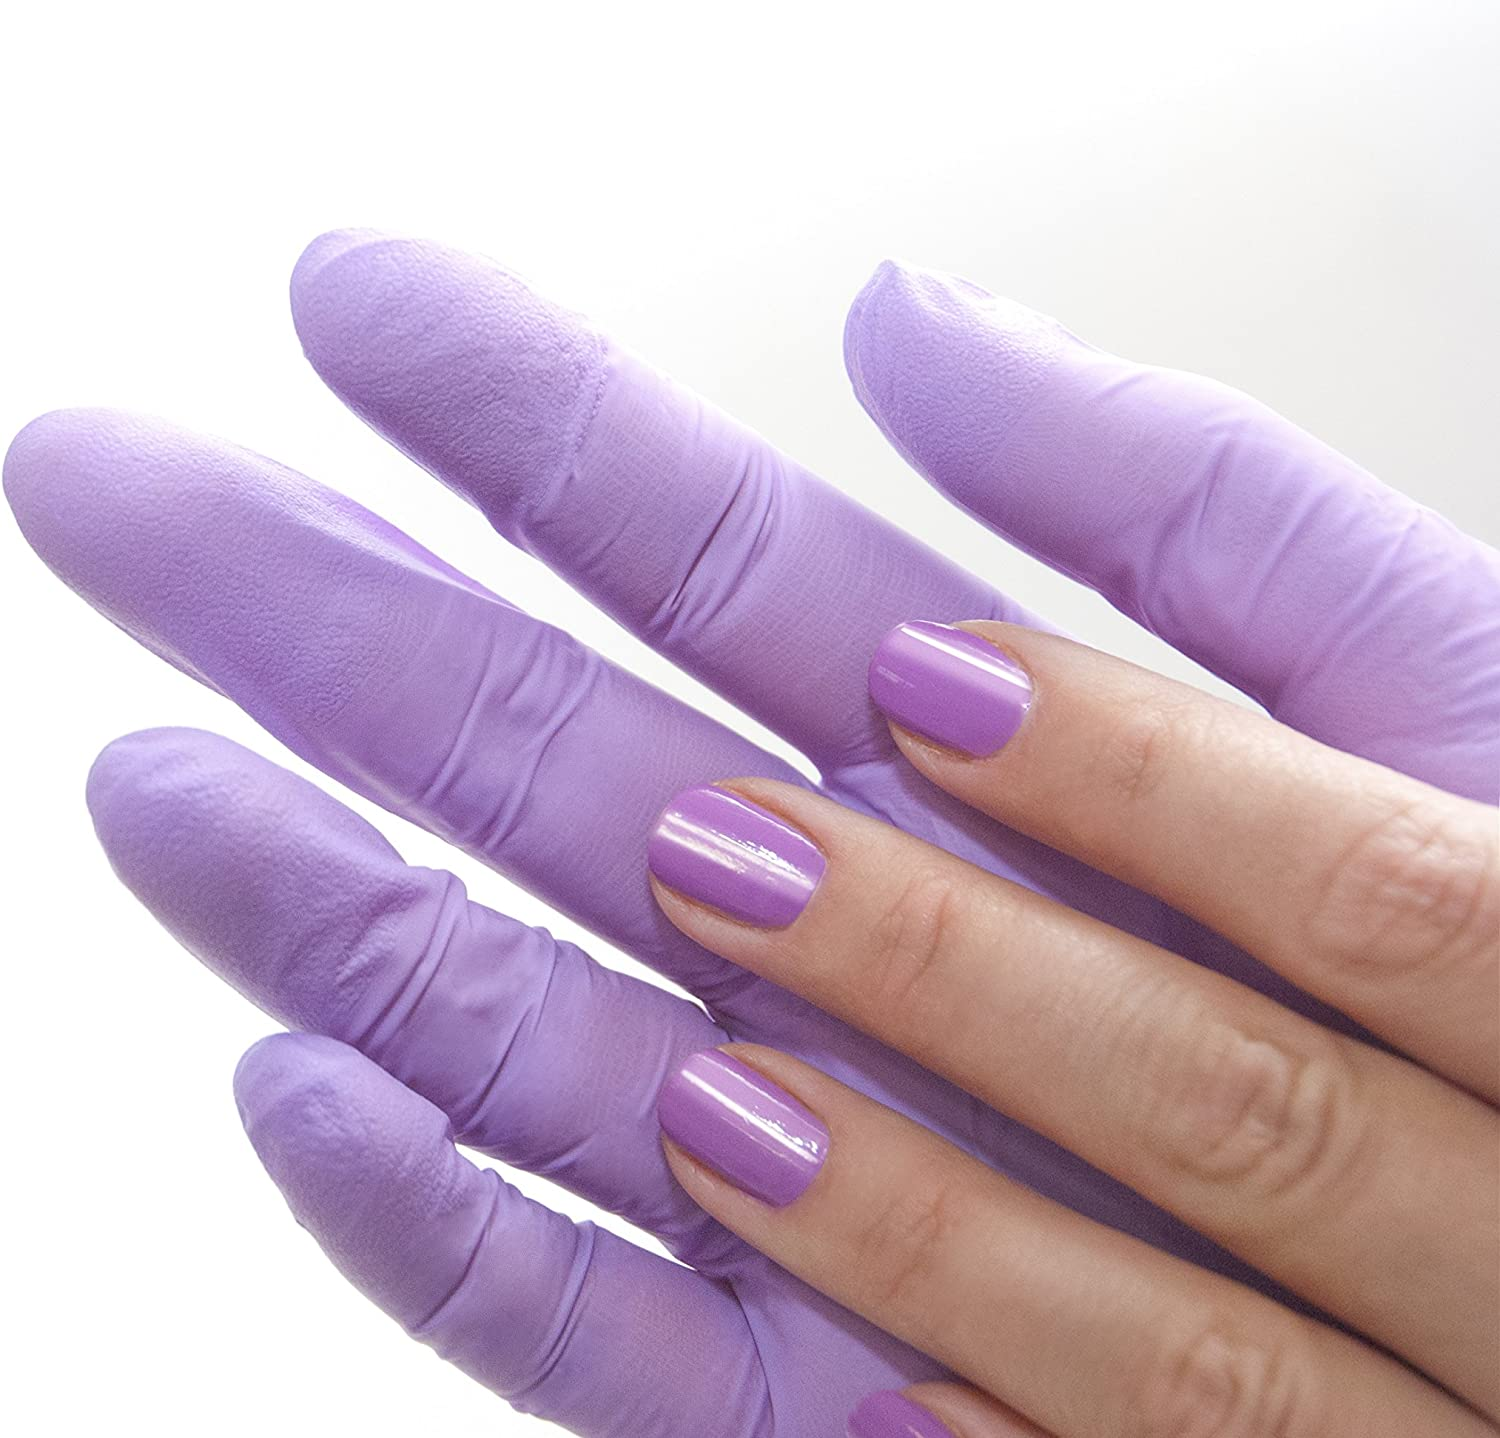 Disposable Examination Gloves Single Use Non Sterile Tattoo Powder Free Nitrile Gloves 100 Pieces Box XS, Purple//Violet Medical Latex Free Gloves